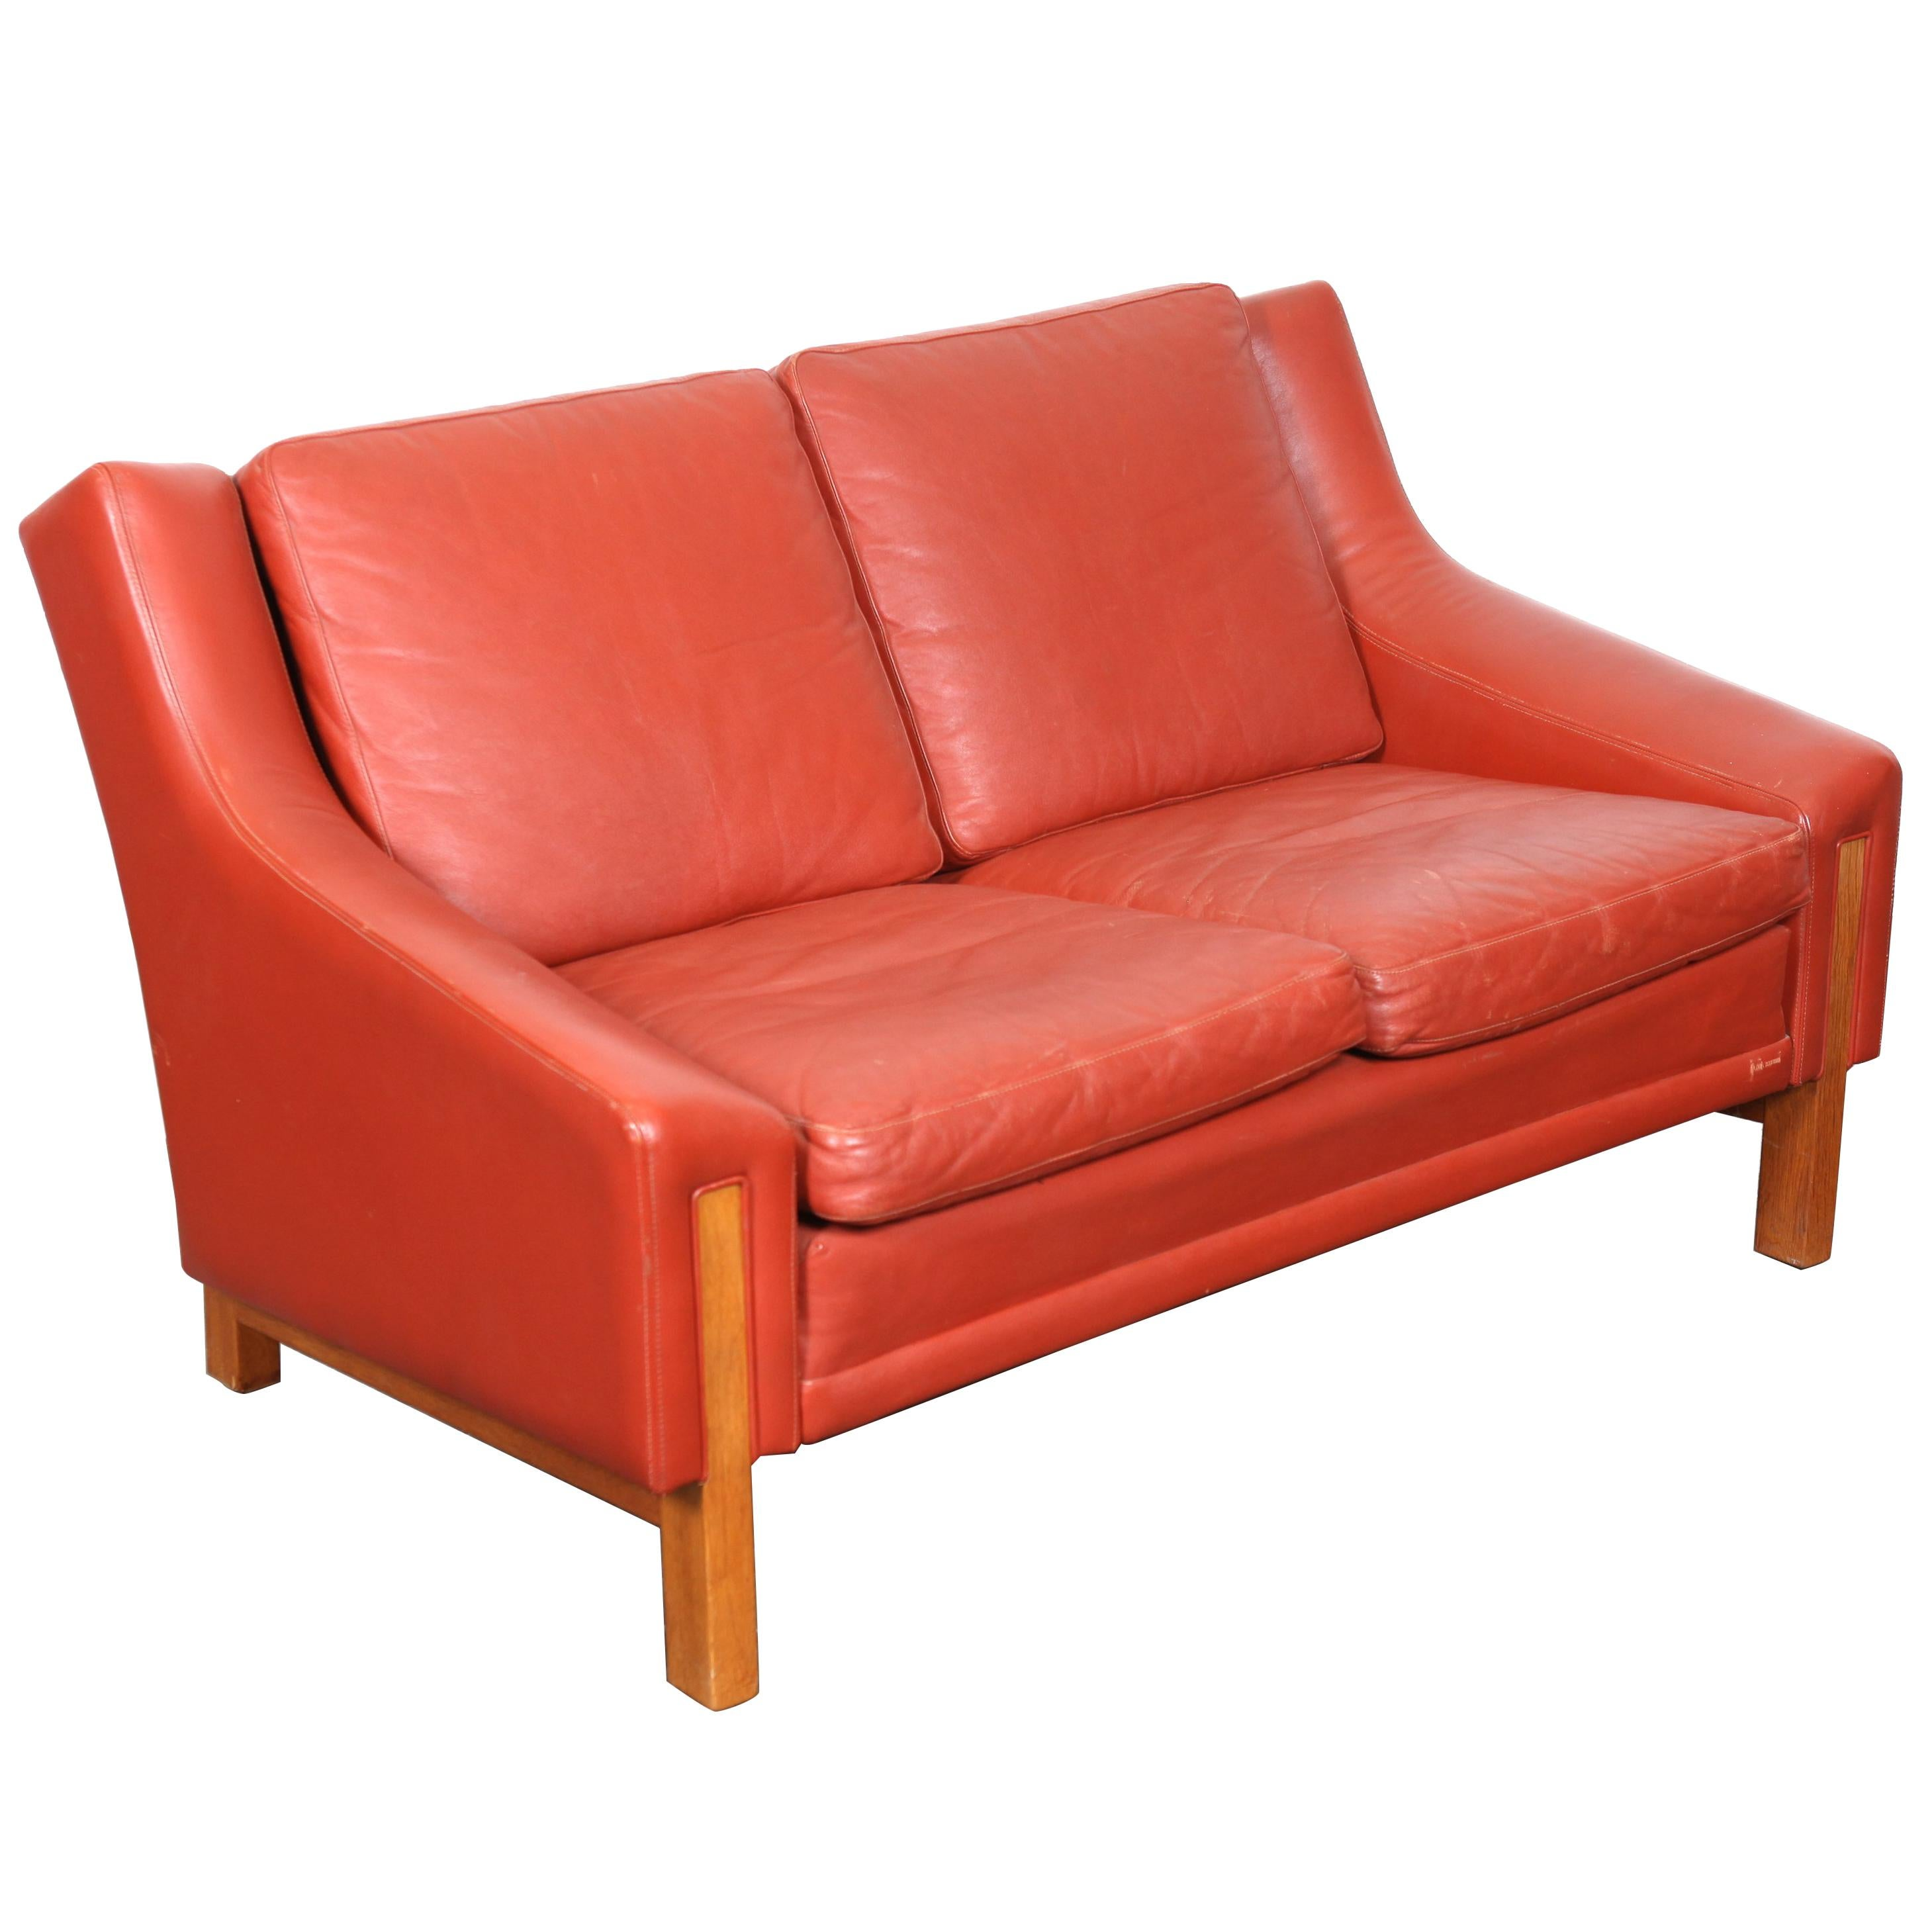 Mid-Century Modern Danish Red Leather Loveseat For Sale at 1stdibs